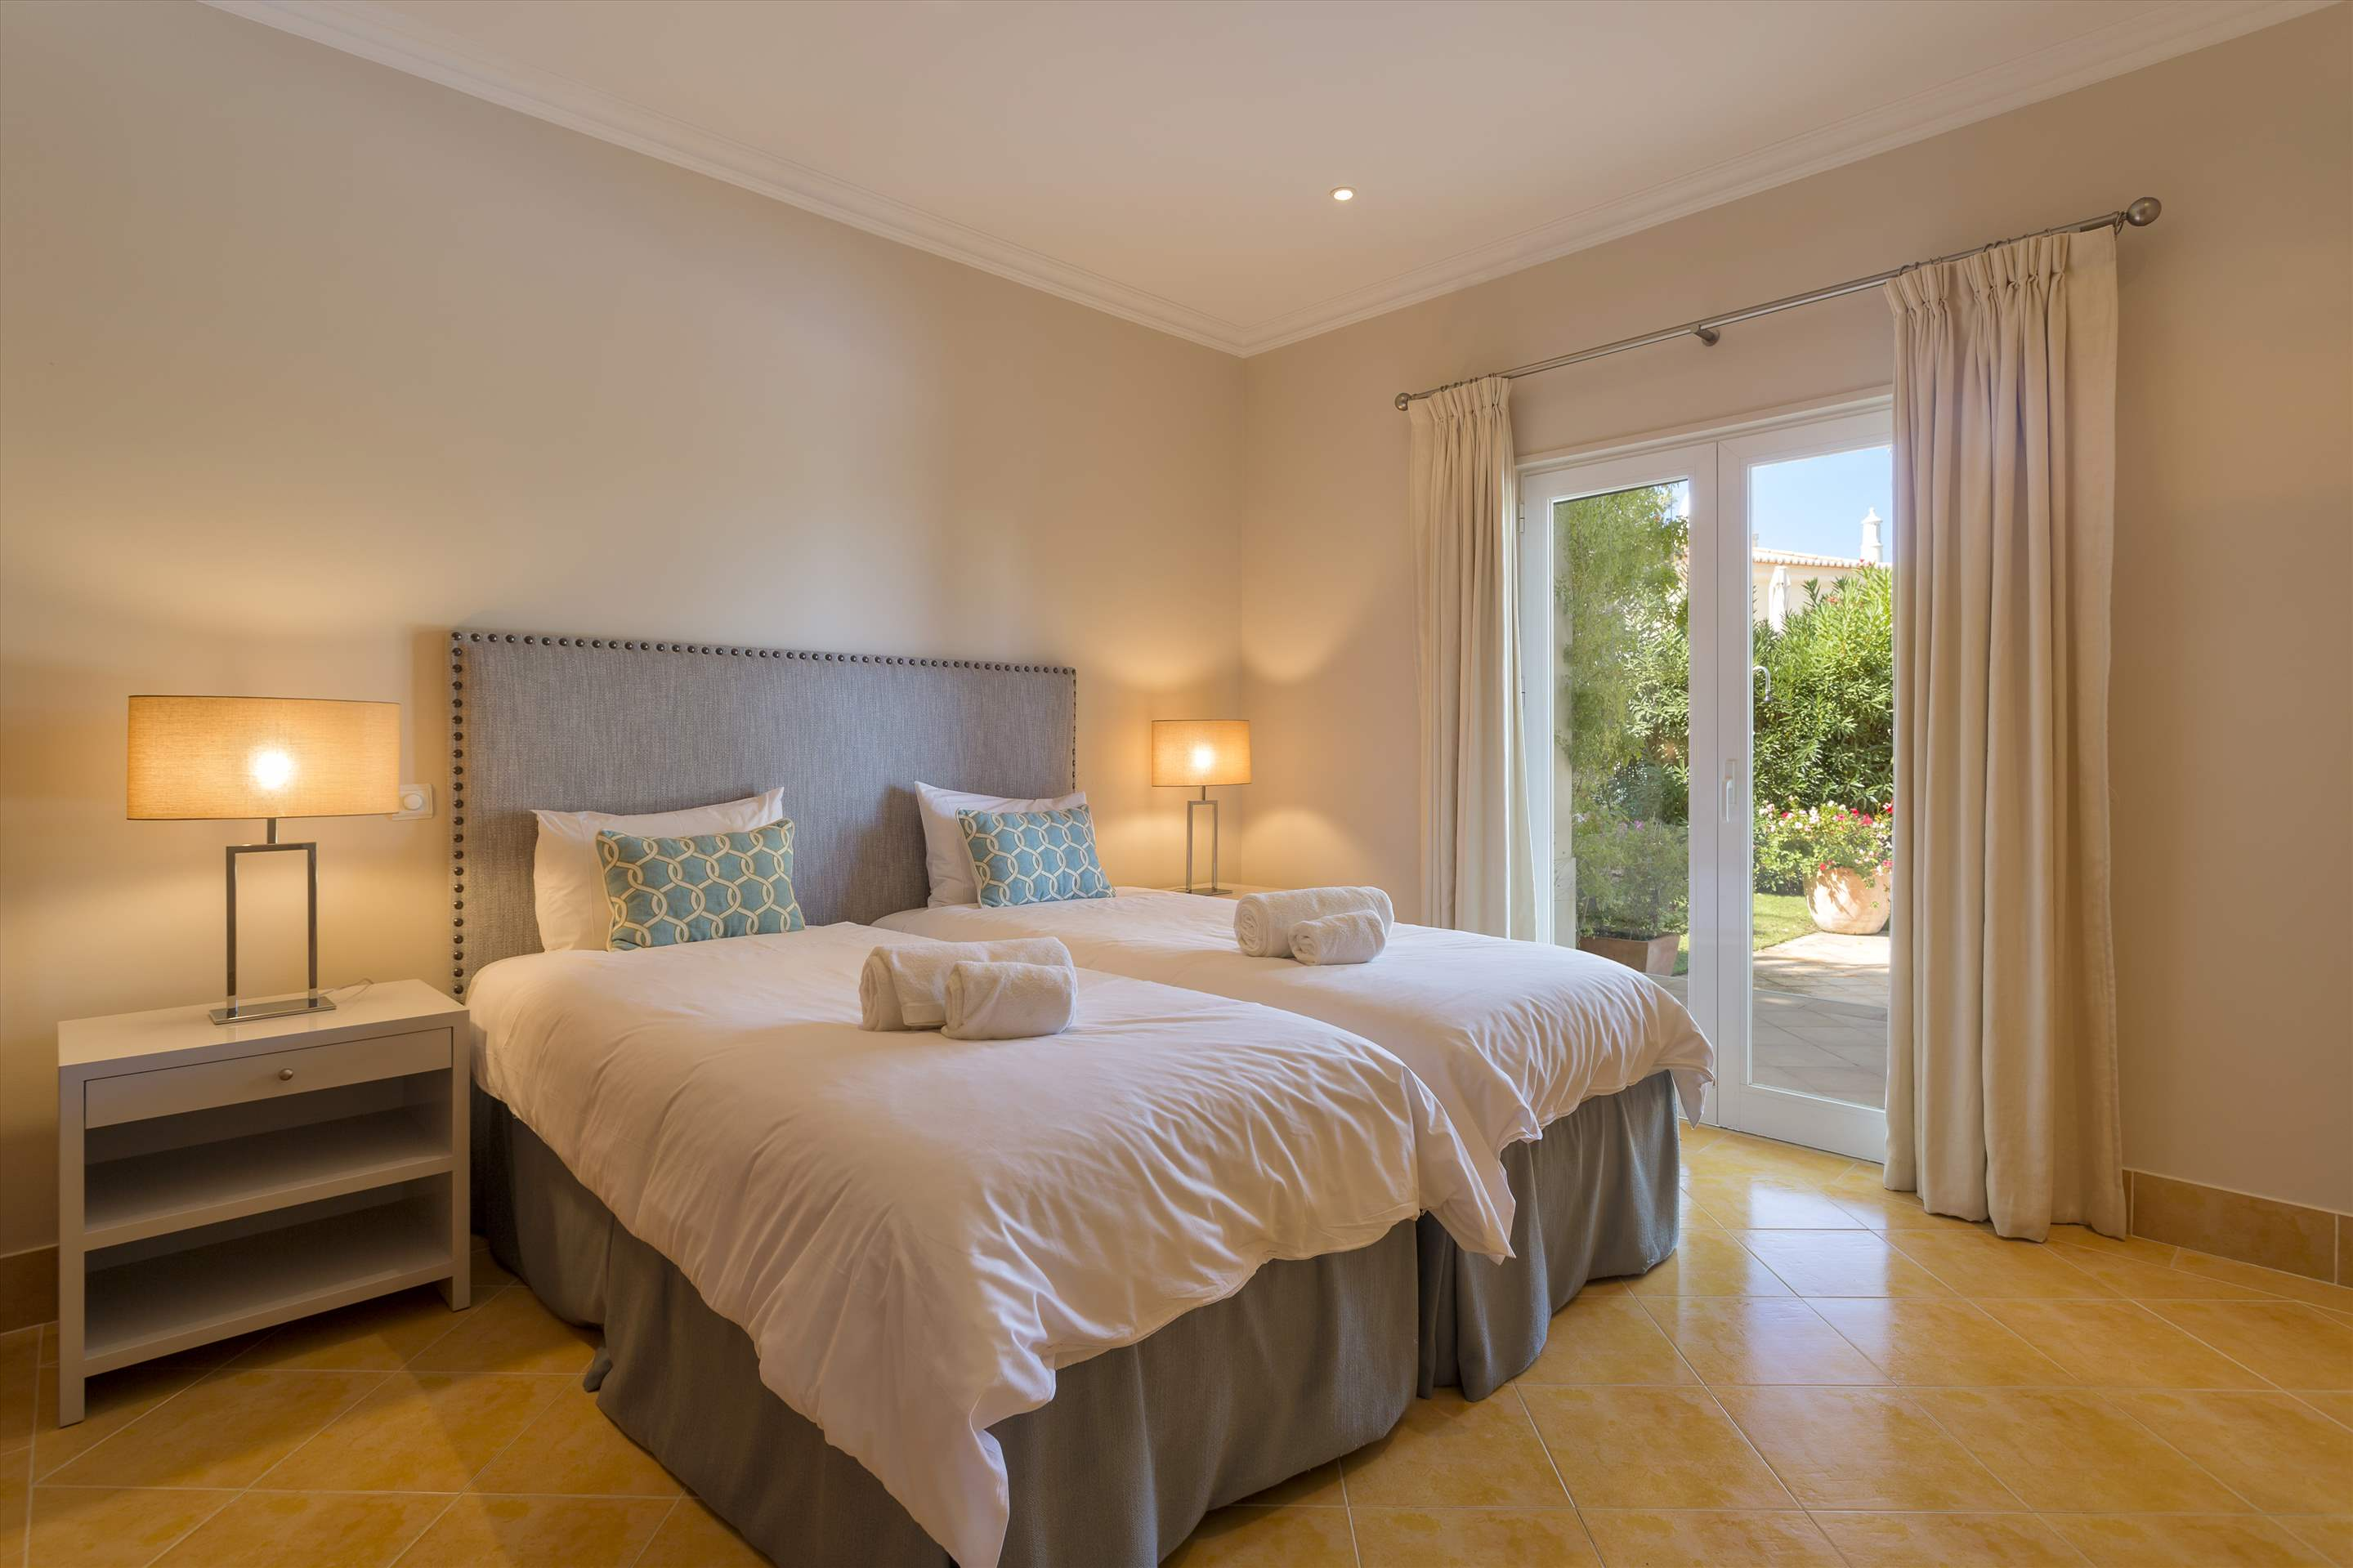 Villa Liza, 4 bedroom villa in Vale do Lobo, Algarve Photo #18